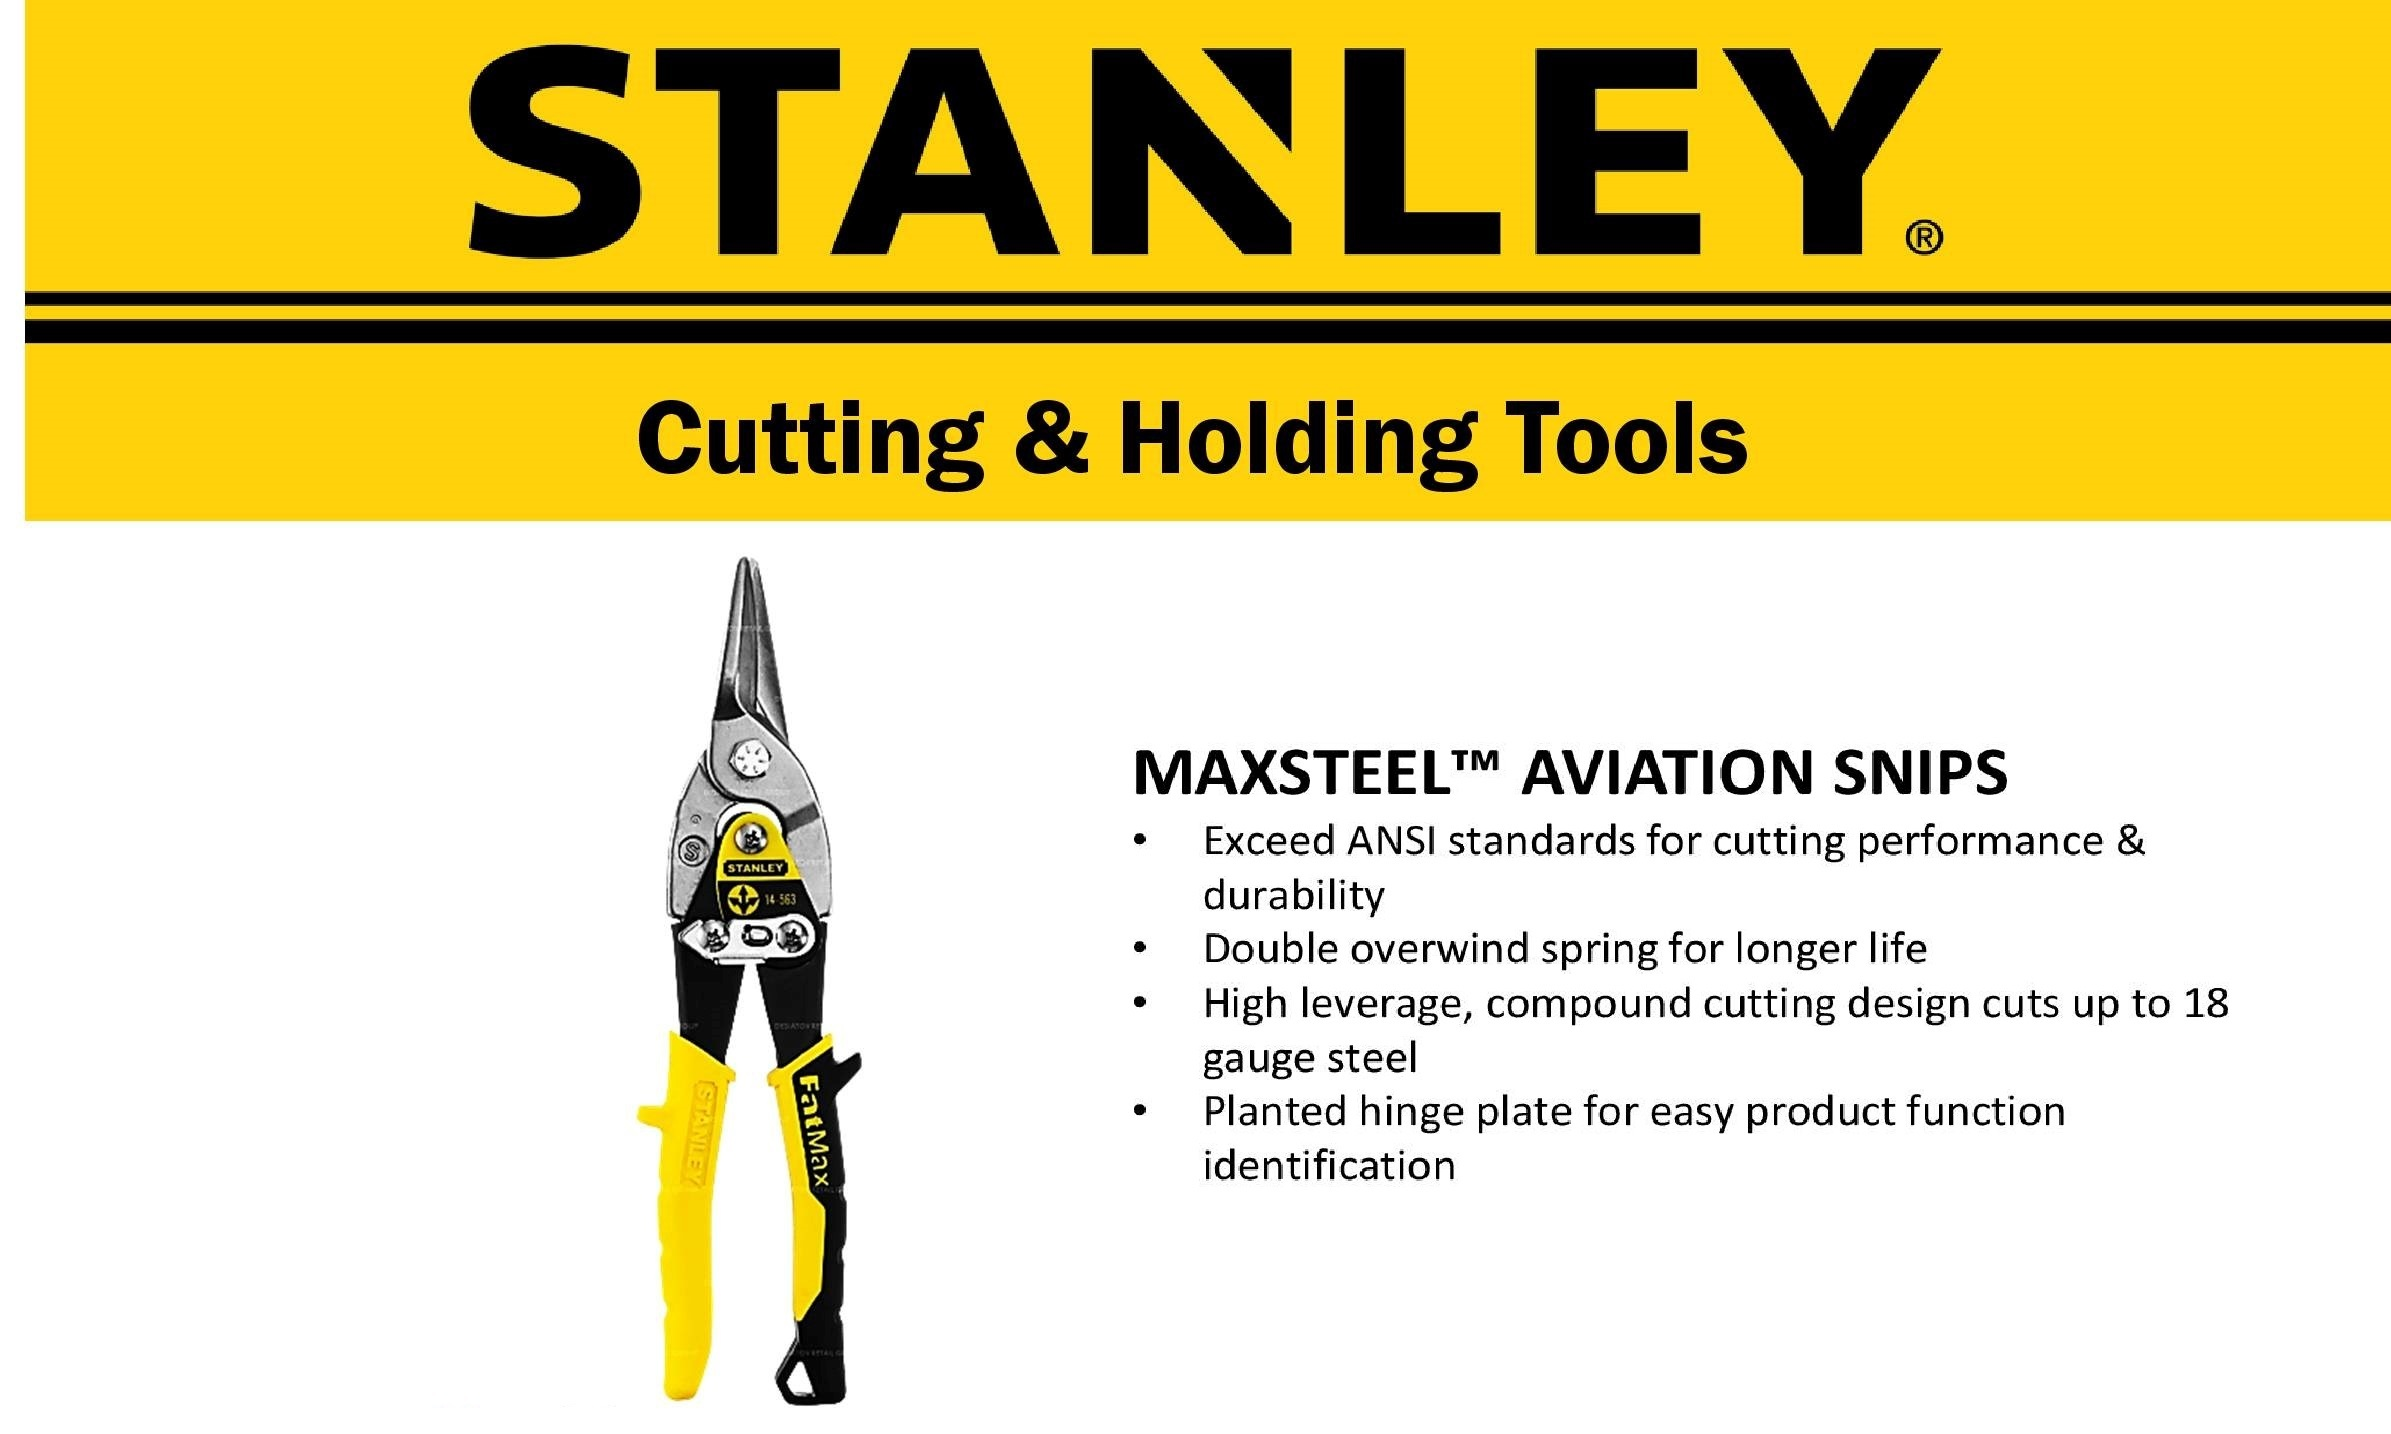 Stanley 02_Cutting & Holding Tools10.jpg